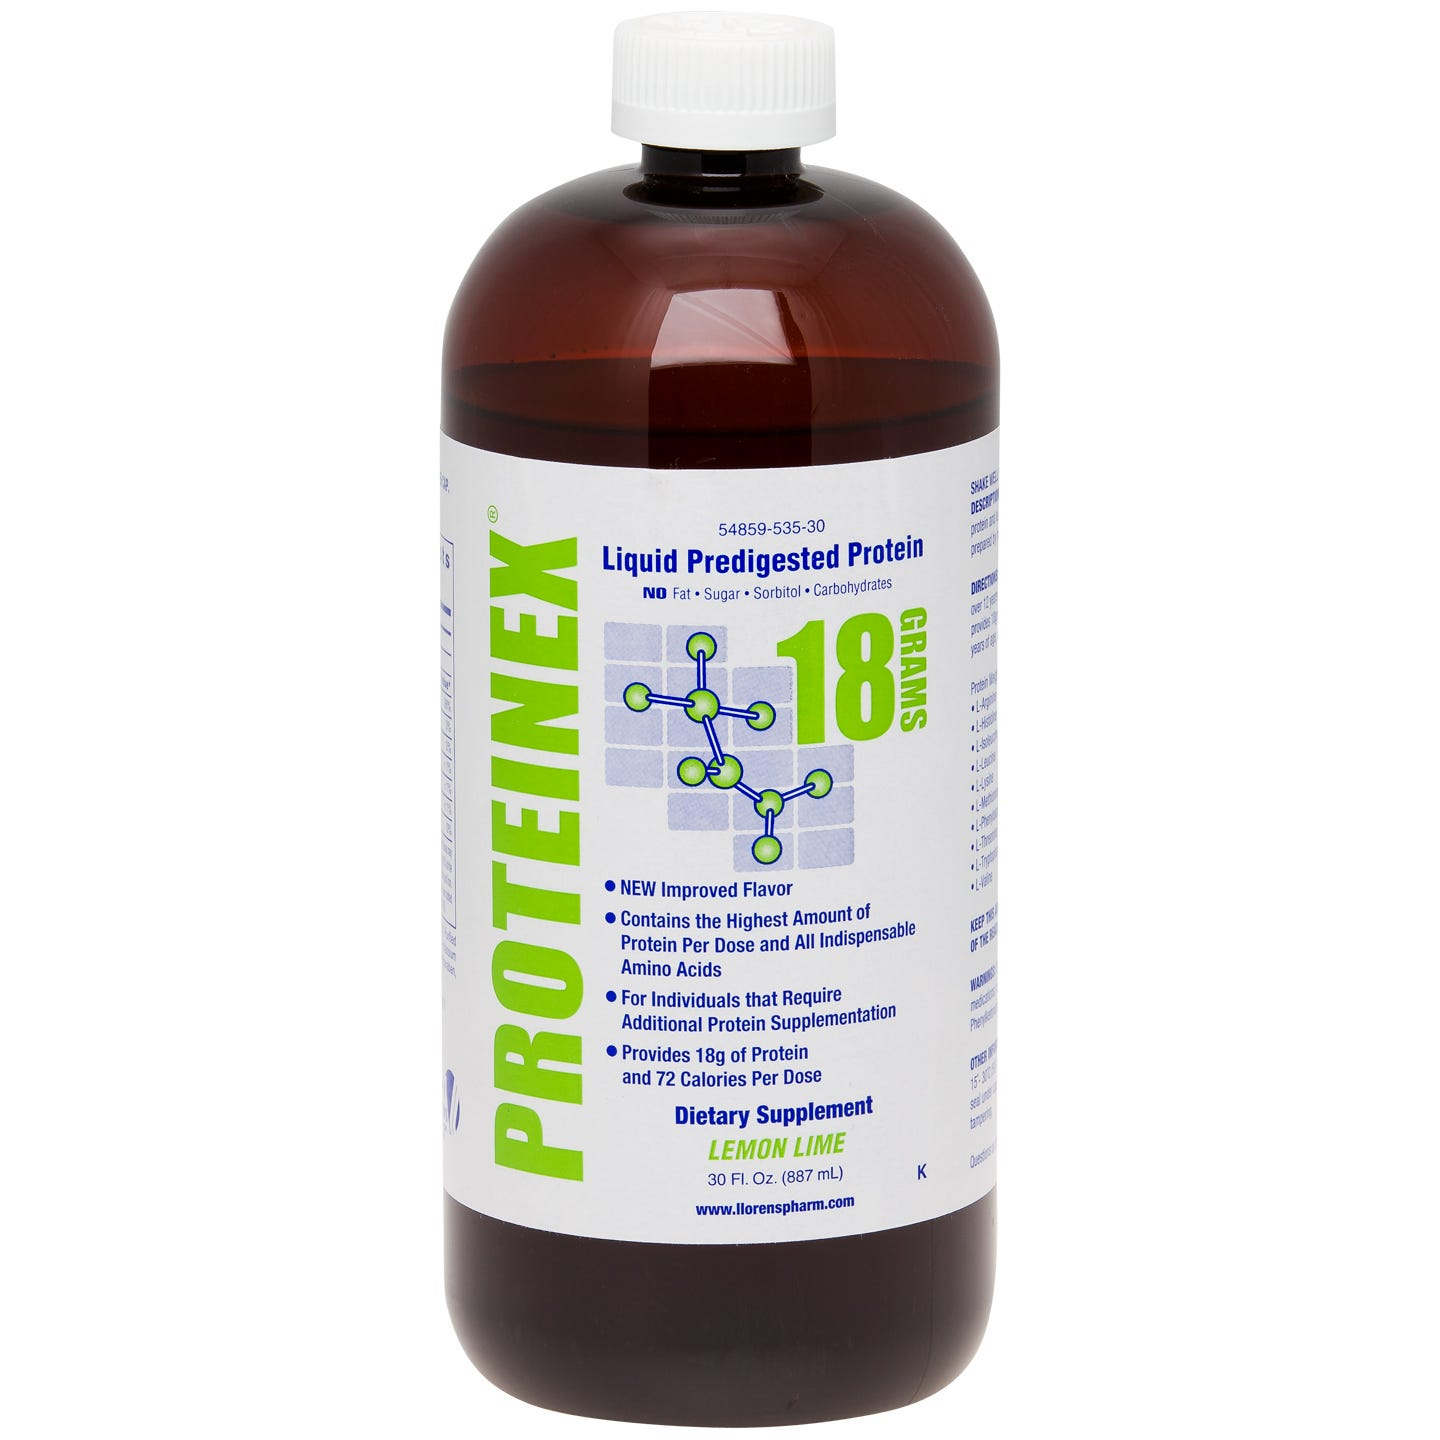 Proteinex-18 Liquid Protein Lemon Lime 30 fl oz - Rapid Diet Weight Loss Products Shop